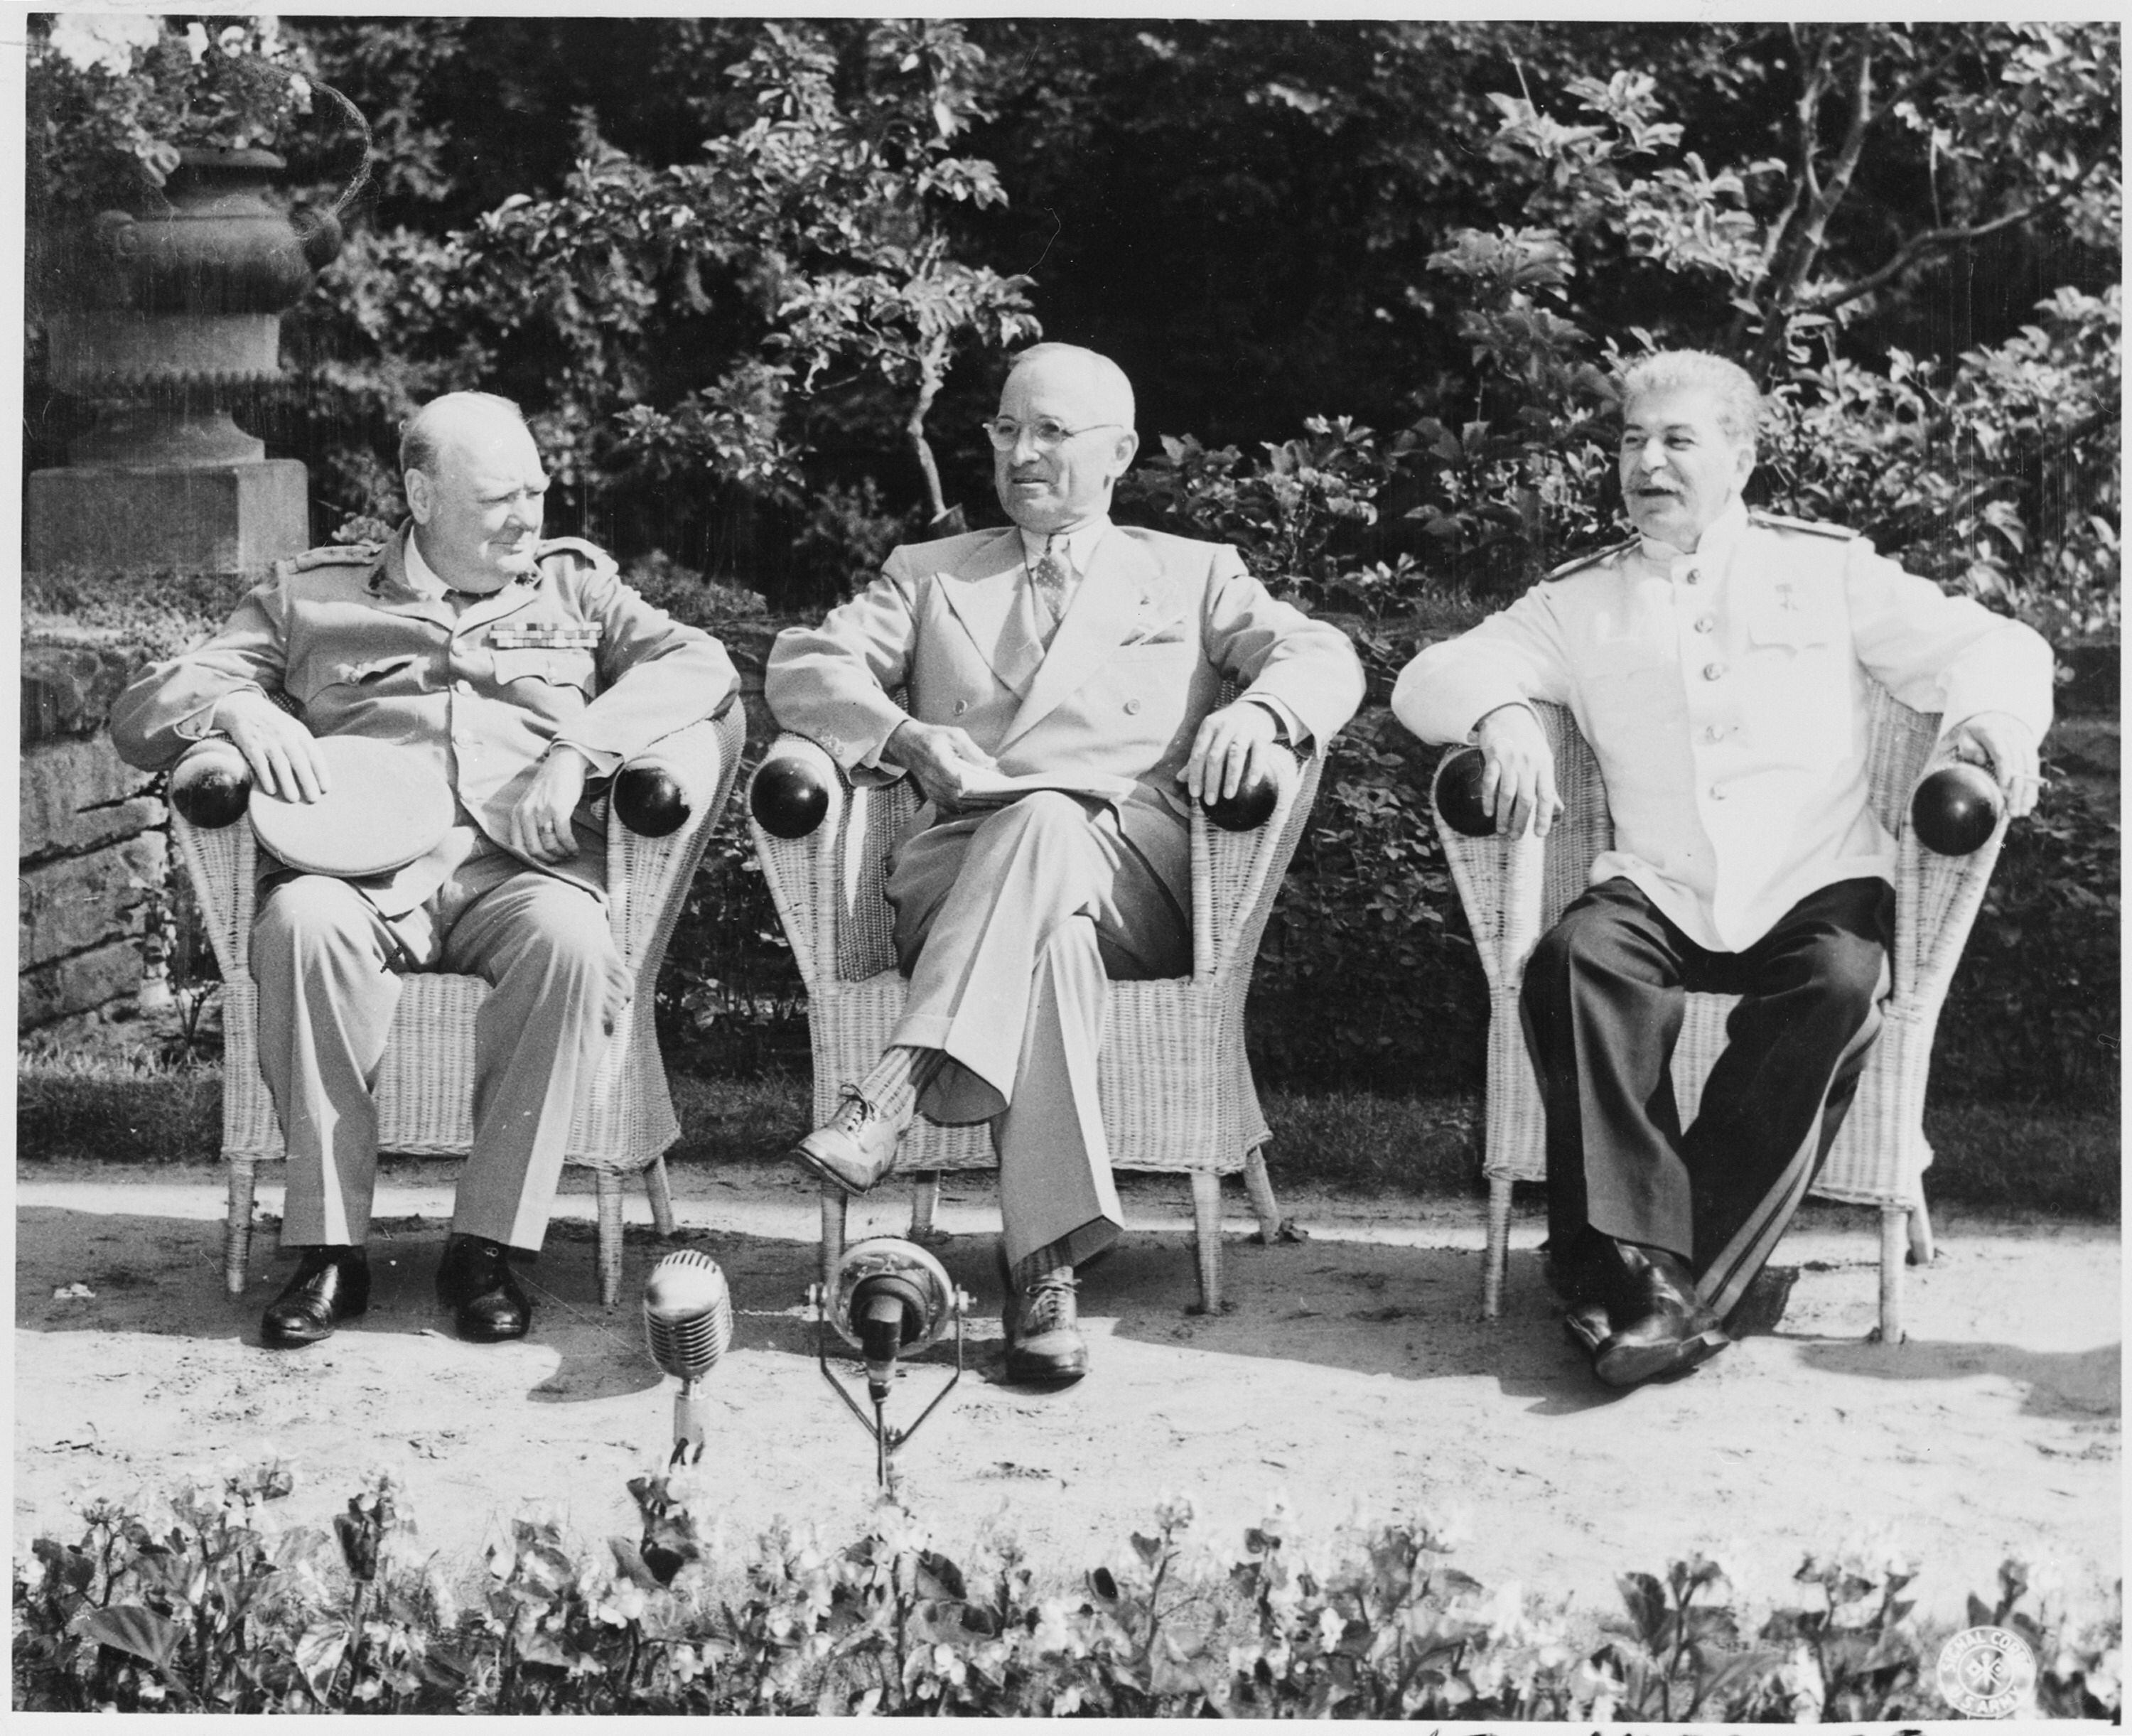 Potsdam Conference, Summer 1945.  Shattered Germany is divided amongst the occupying powers. East Germany goes to the Soviet Union & it's Red army.  West Germany is left to the U.S., Britain & France.  Berlin is divided between the USA in the west and Soviets in the east.  Due to Berlin's East German location, the Allies are able to supply West Berlin via specific rail routes and by air.